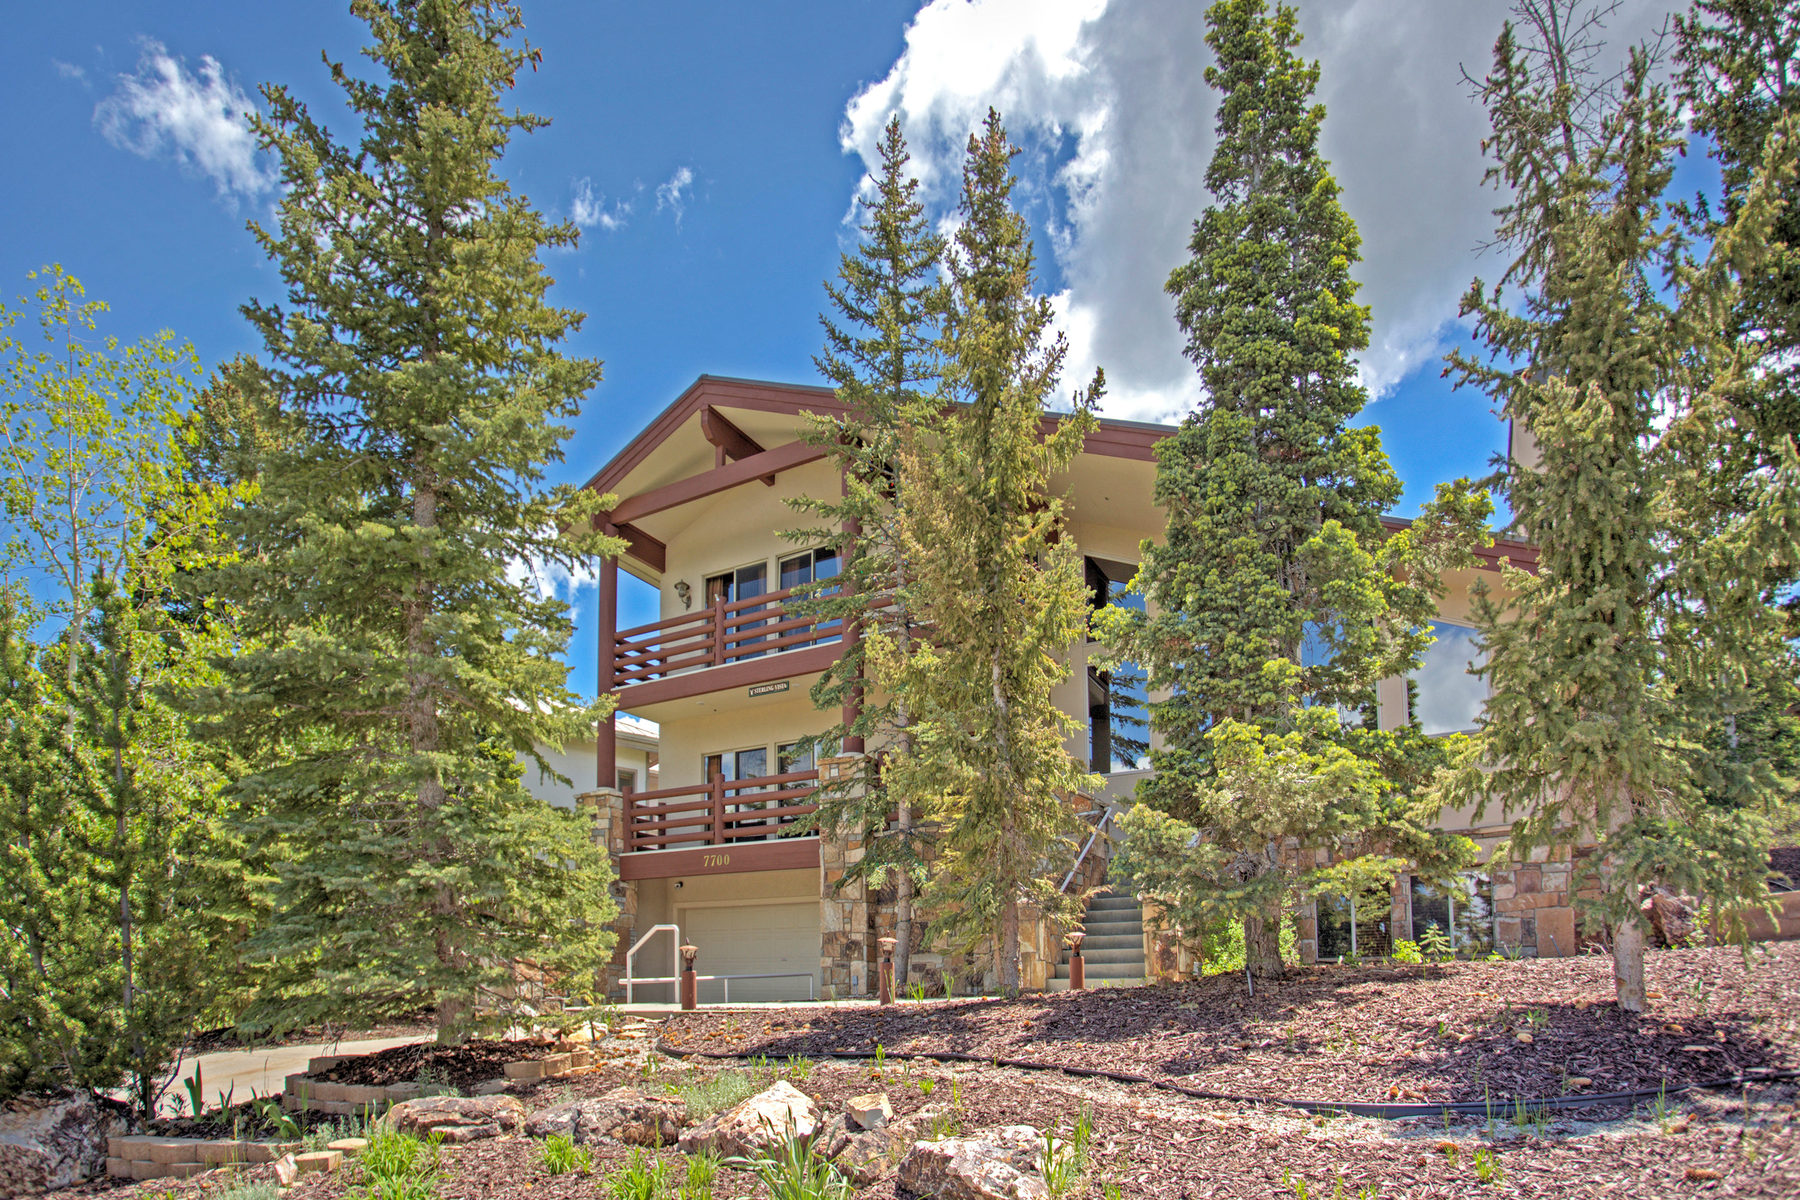 Single Family Home for Sale at Easy Deer Valley Ski Access with Excellent Views 7700 Sterling Dr Park City, Utah 84060 United States